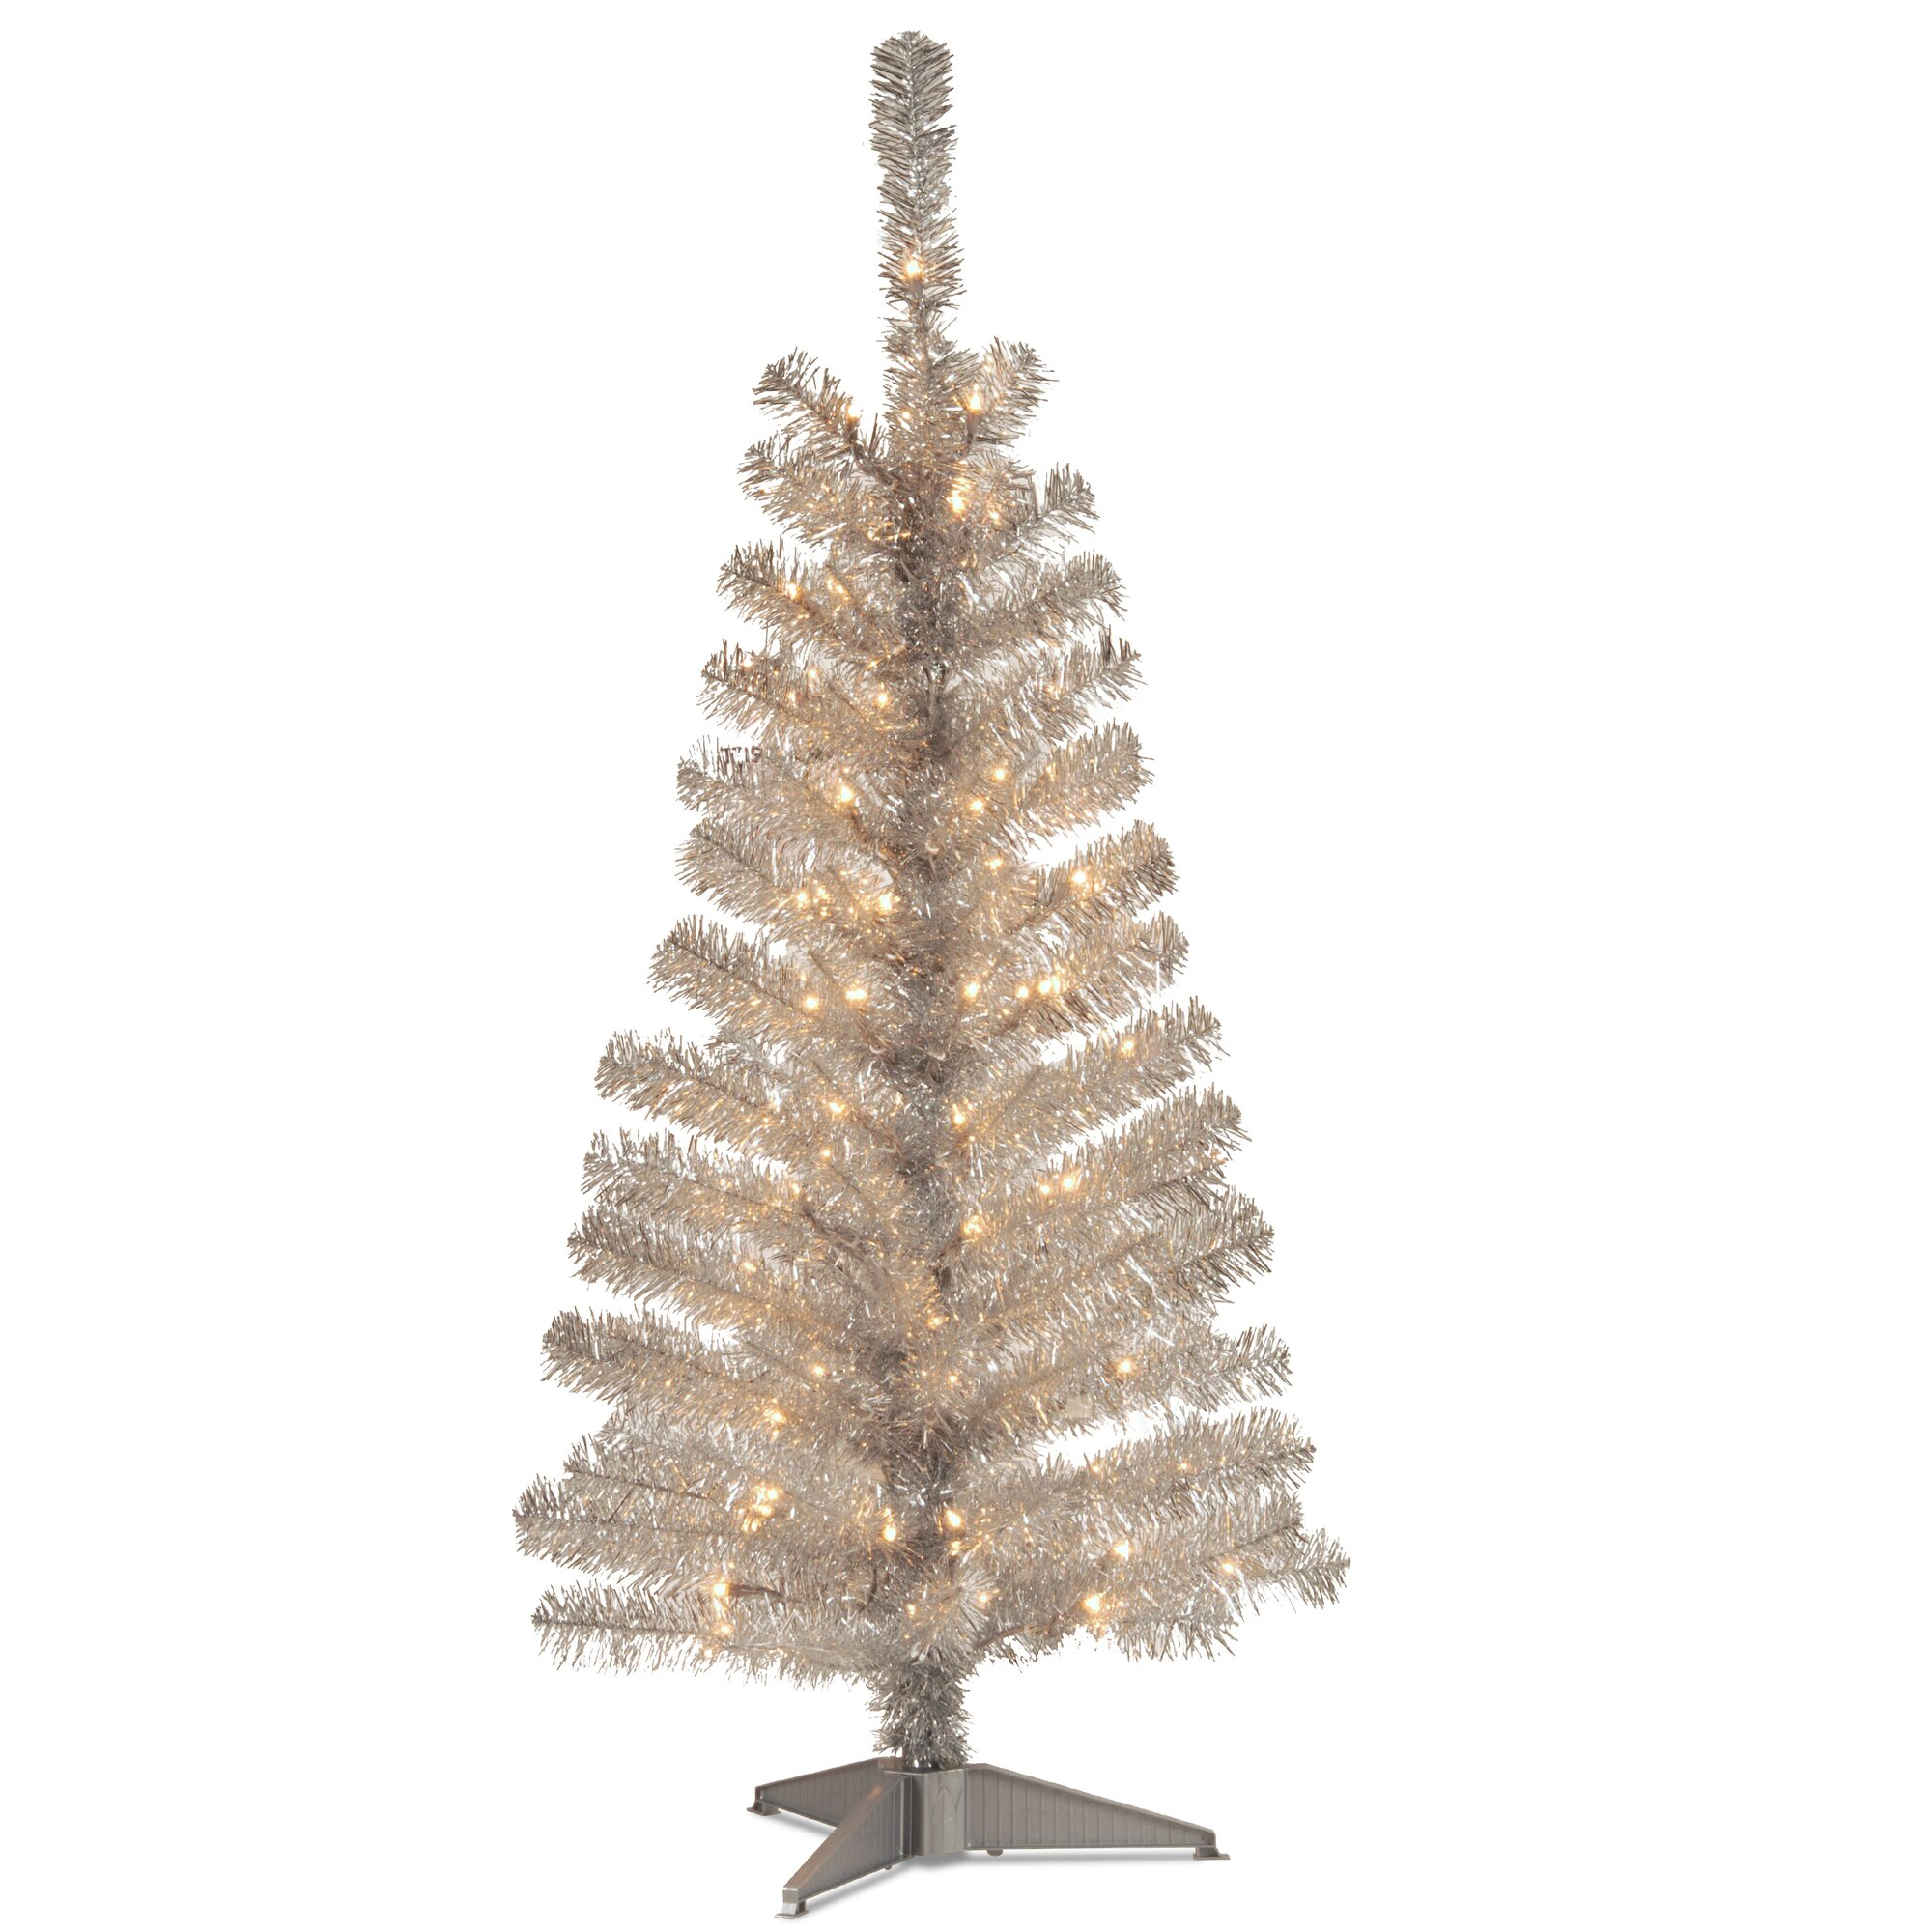 Home Depot Real Christmas Tree Prices: National Tree Co. Tinsel Trees 4' Silver Artificial